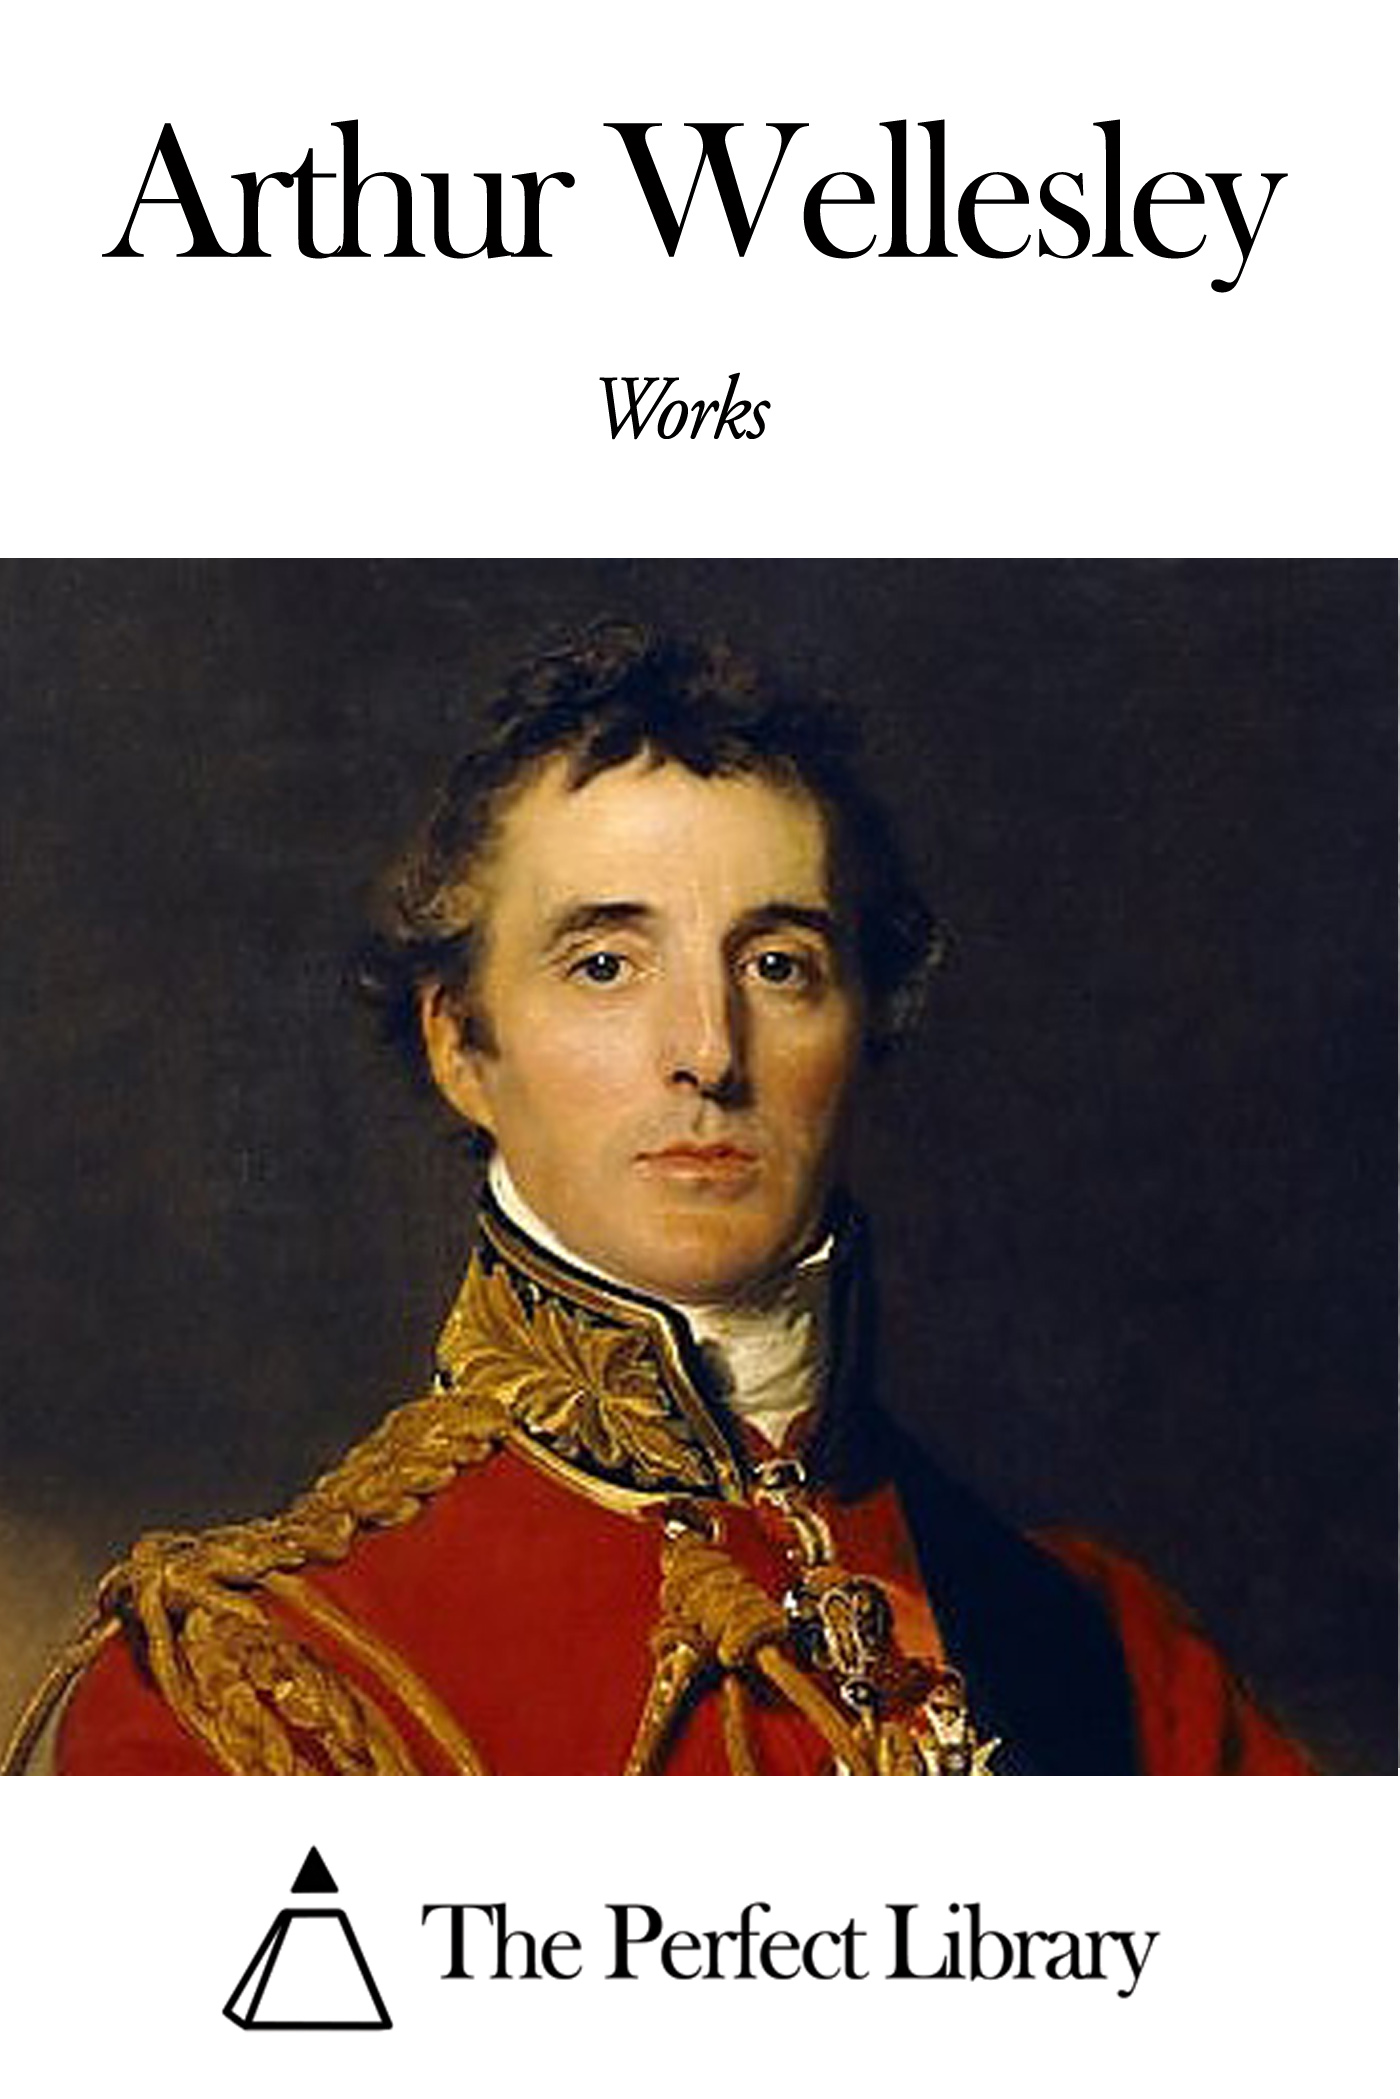 Works of Arthur Wellesley